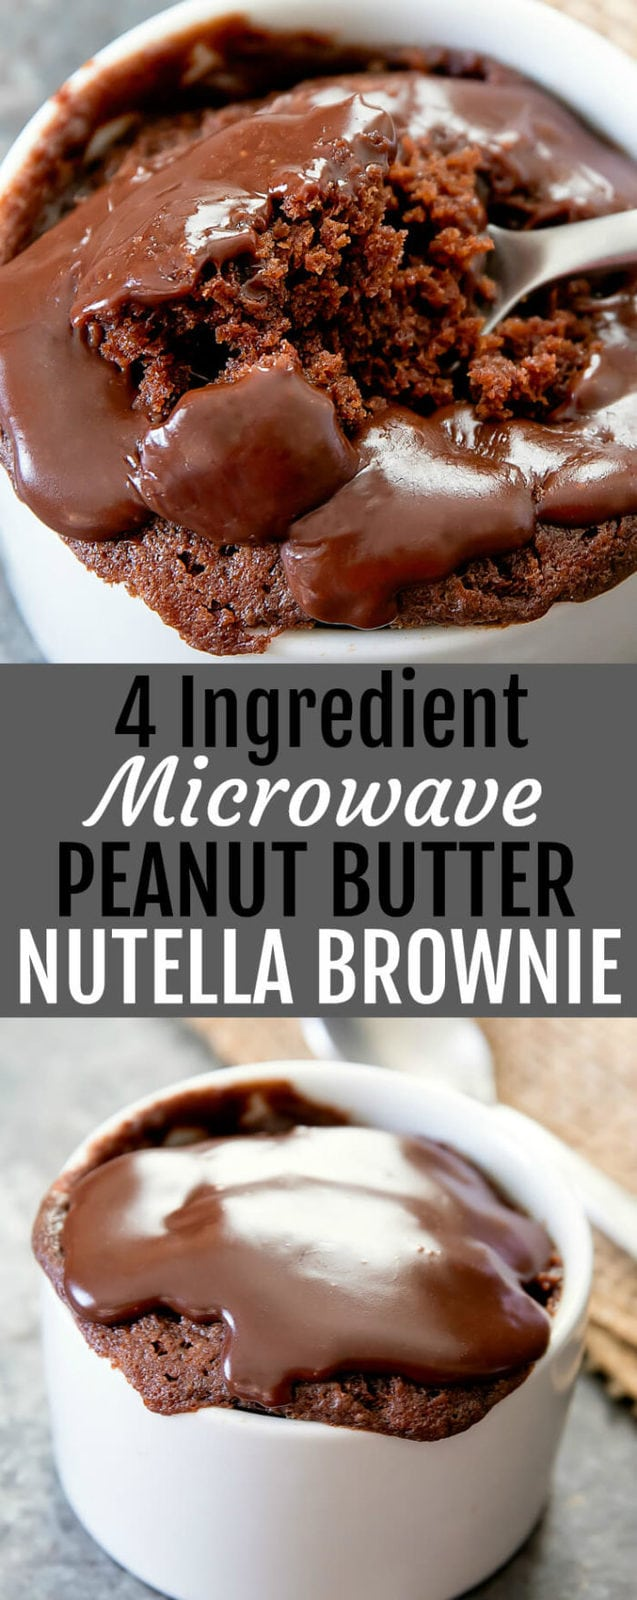 4 Ingredient Microwave Peanut Butter Nutella Brownie Mug Cake